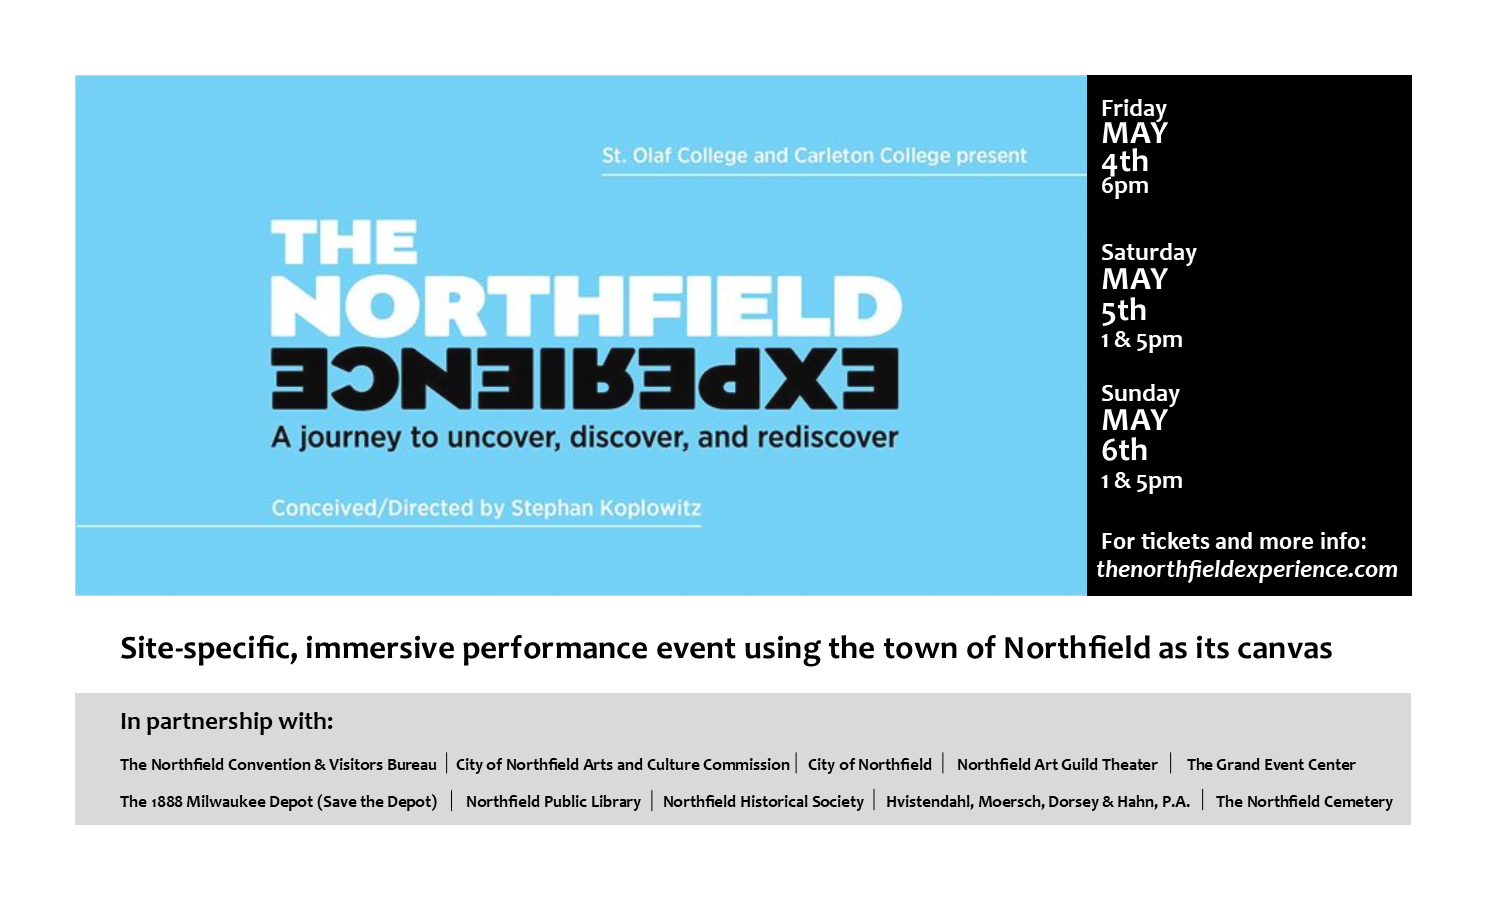 NorthfieldExperience